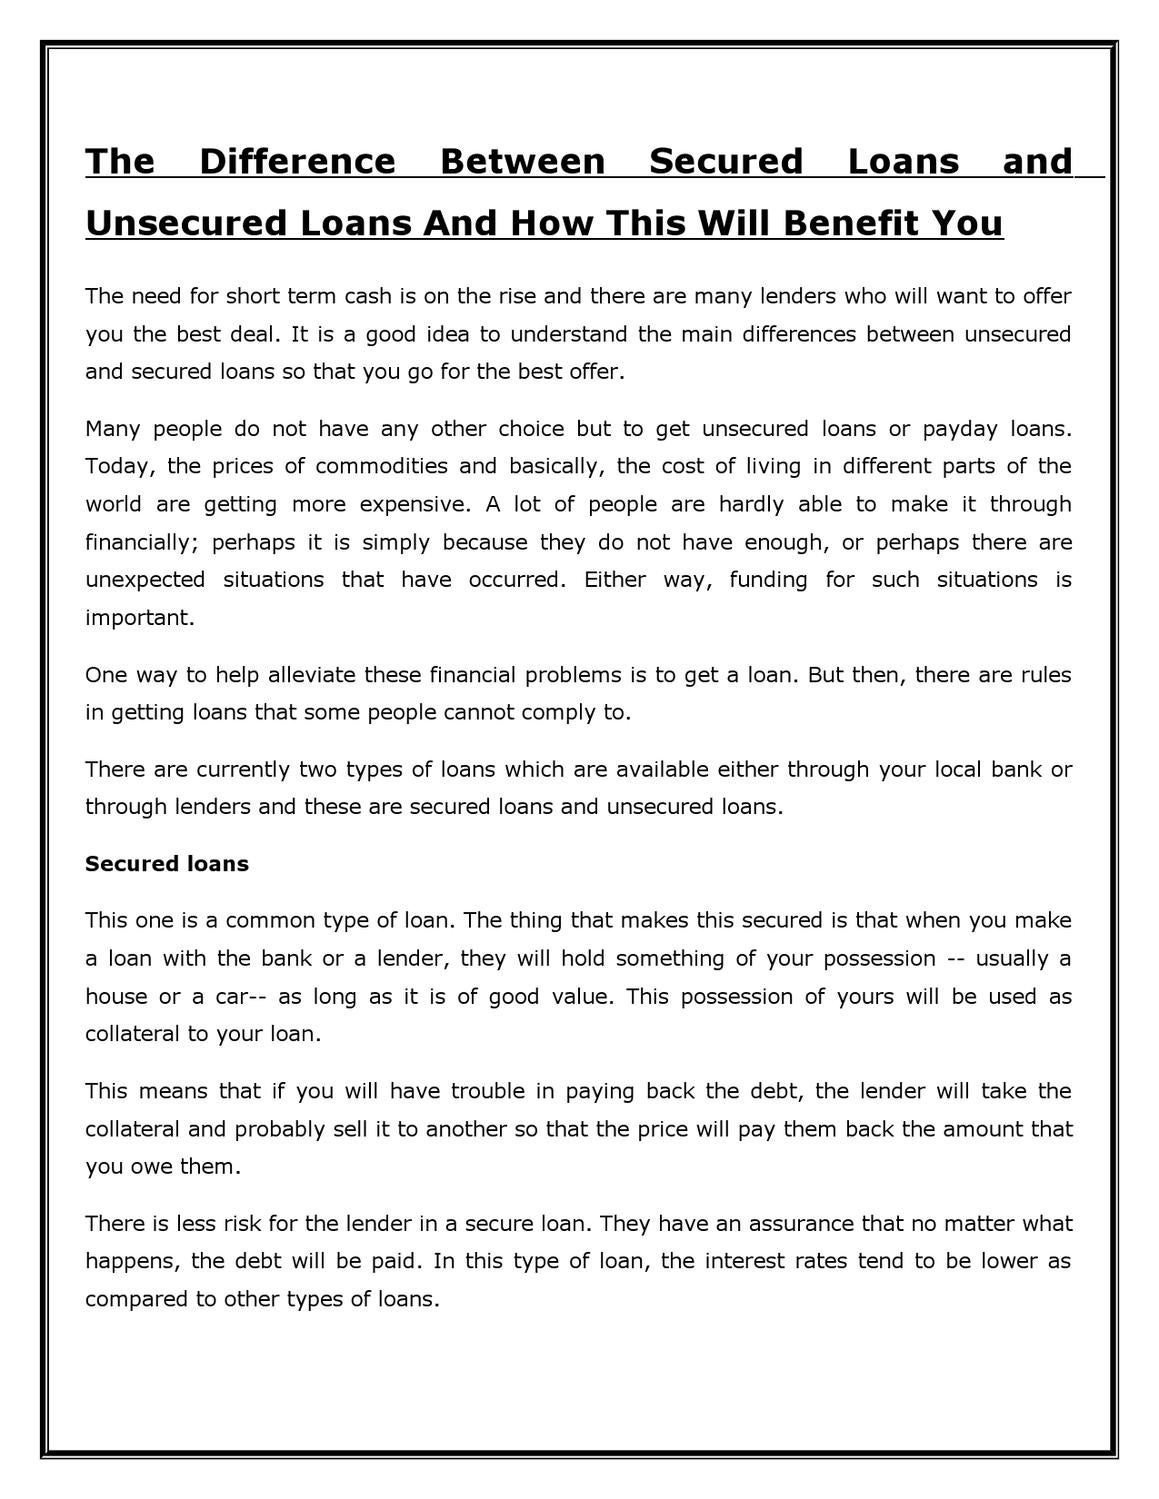 The Difference Between Secured Loans and Unsecured Loans And How This Will Benefit You by Henry ...